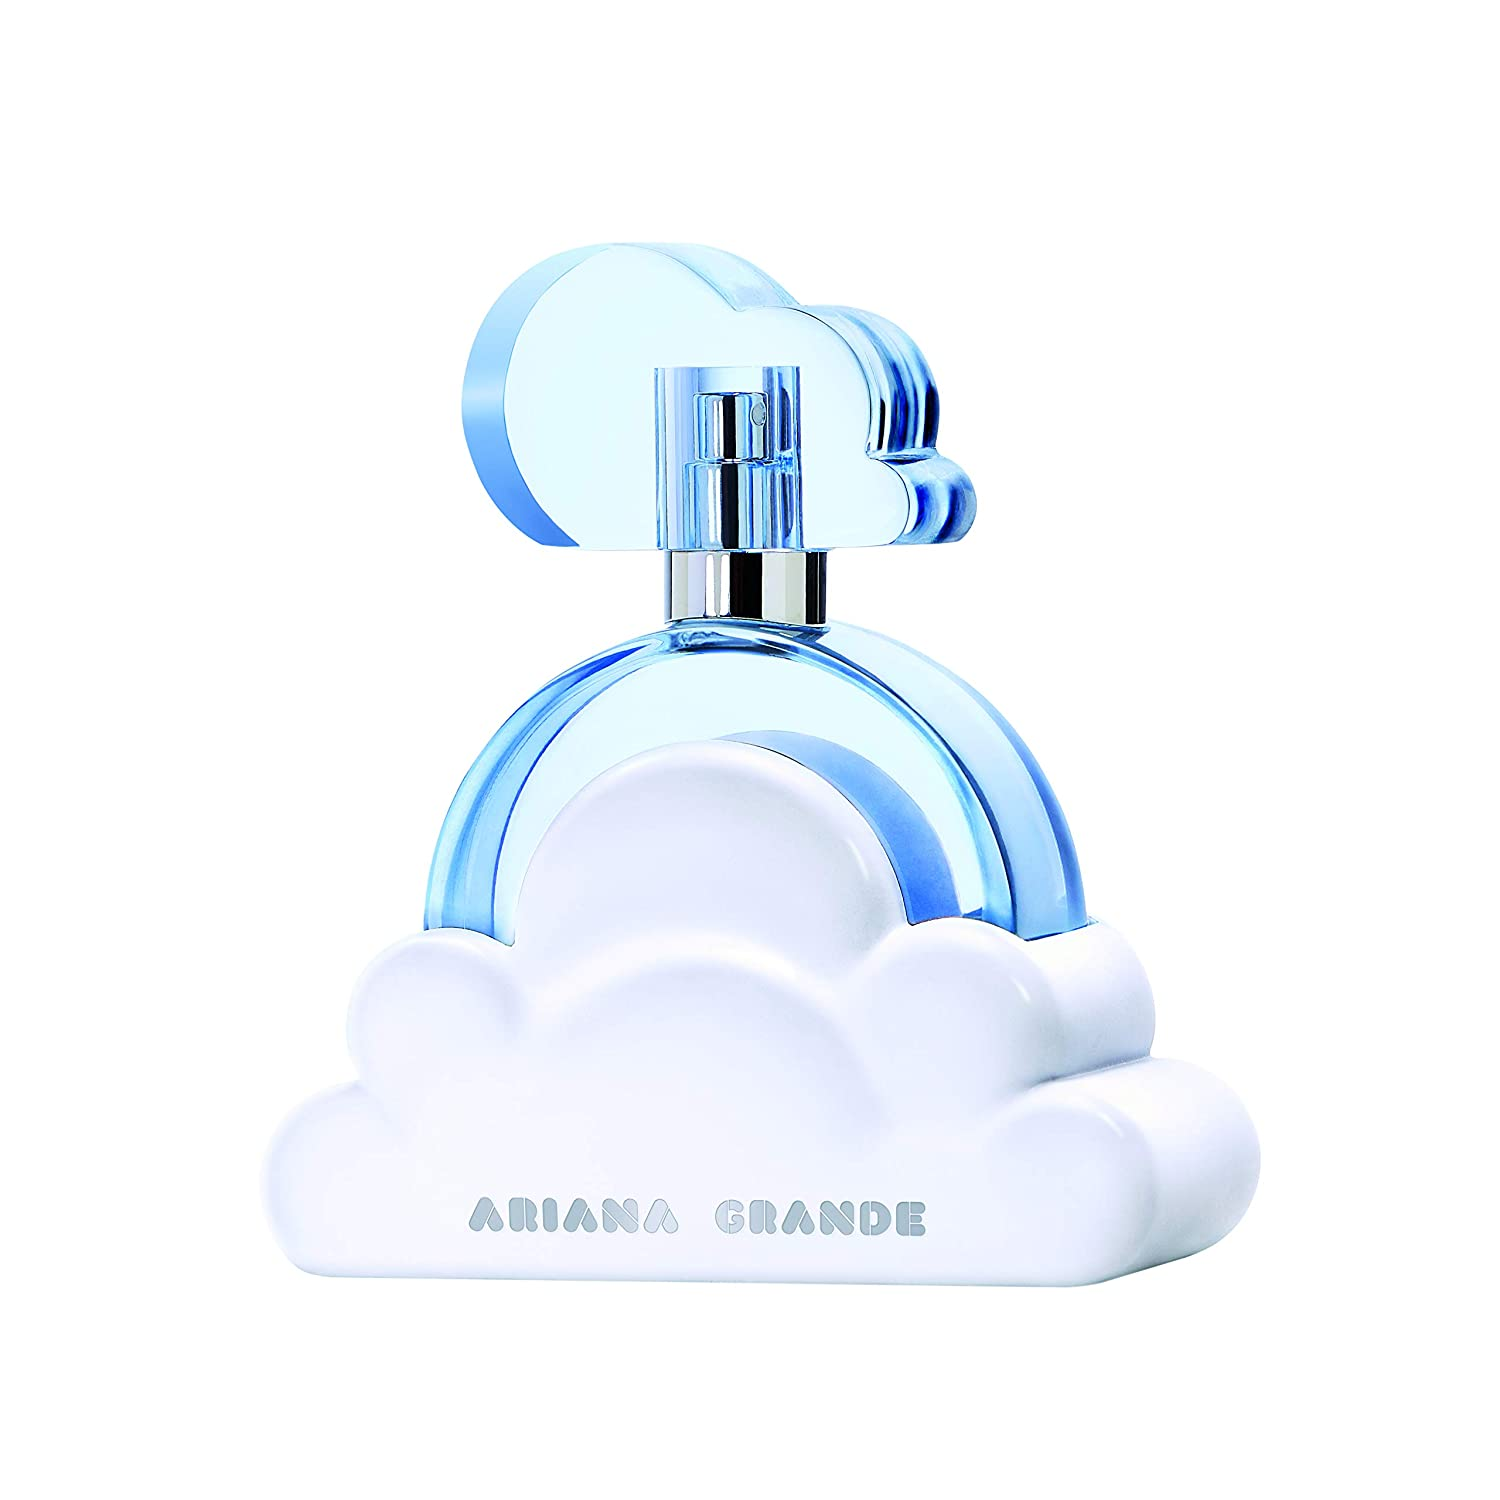 CLOUD by Ariana Grande 100 ml Eau de Parfum Spray